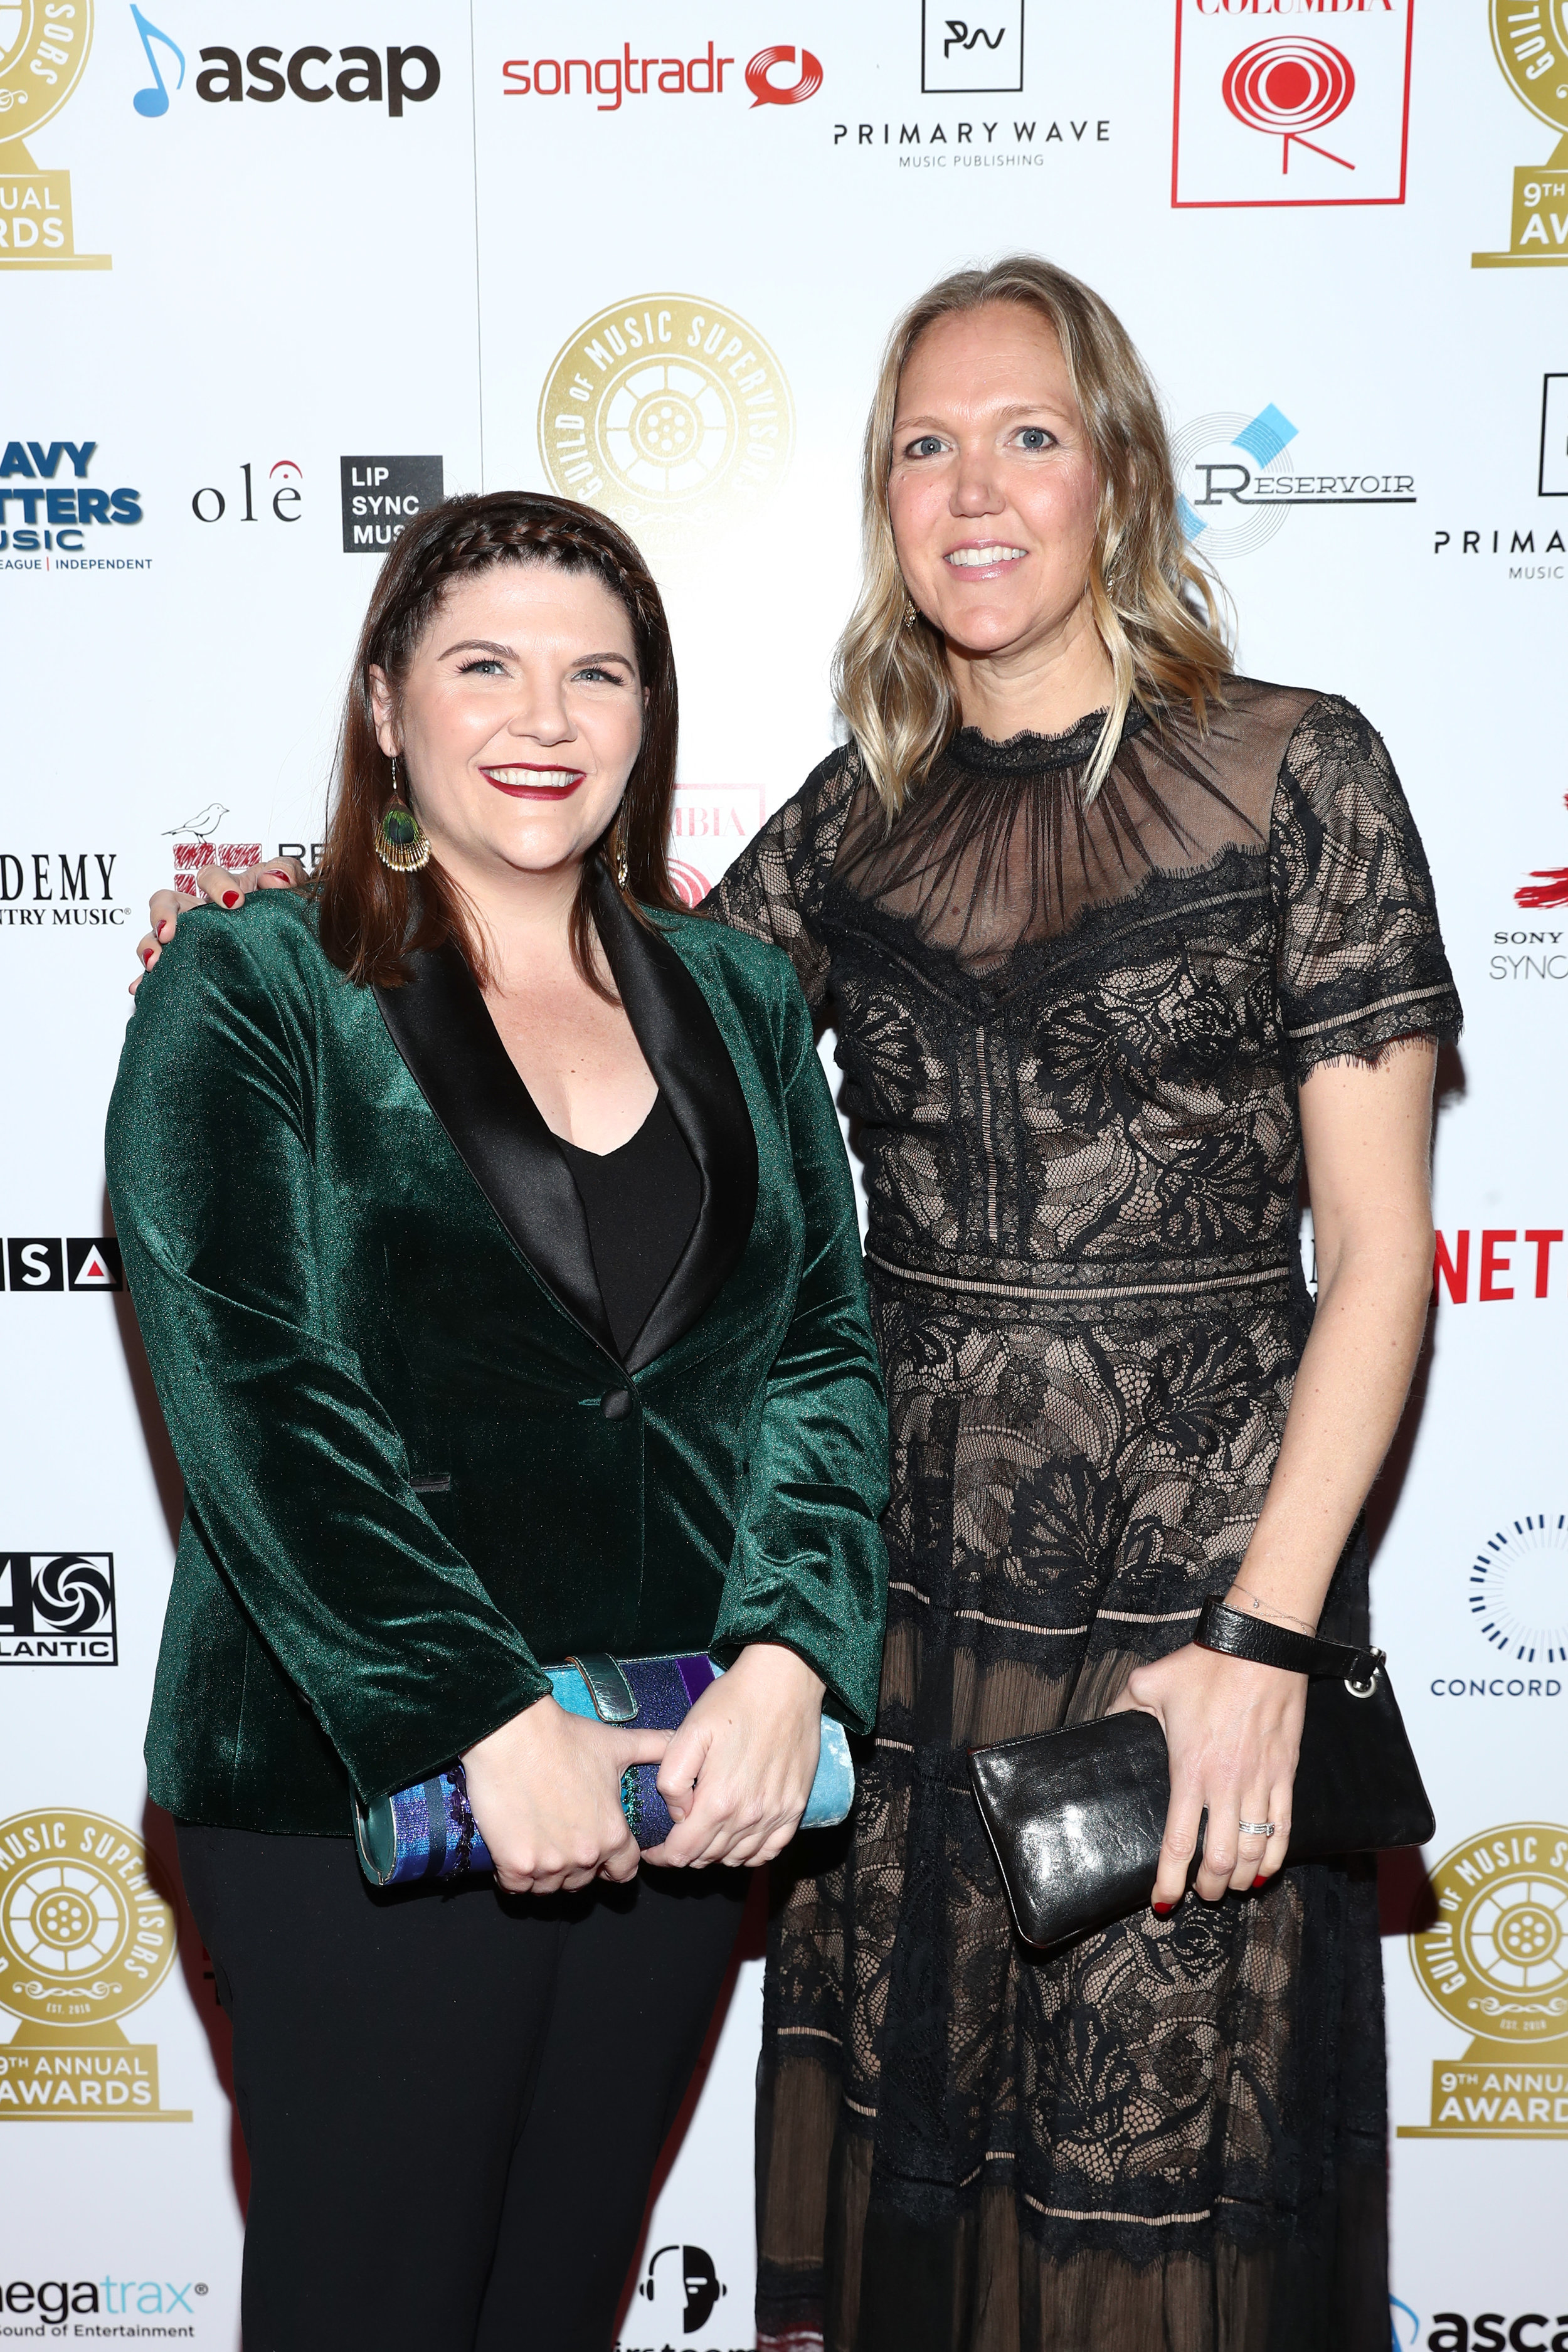 Laura Webb and Lindsay Wolfington at the 9th Annual Guild of Music Supervisors Awards | © Rich Polk | Getty Images